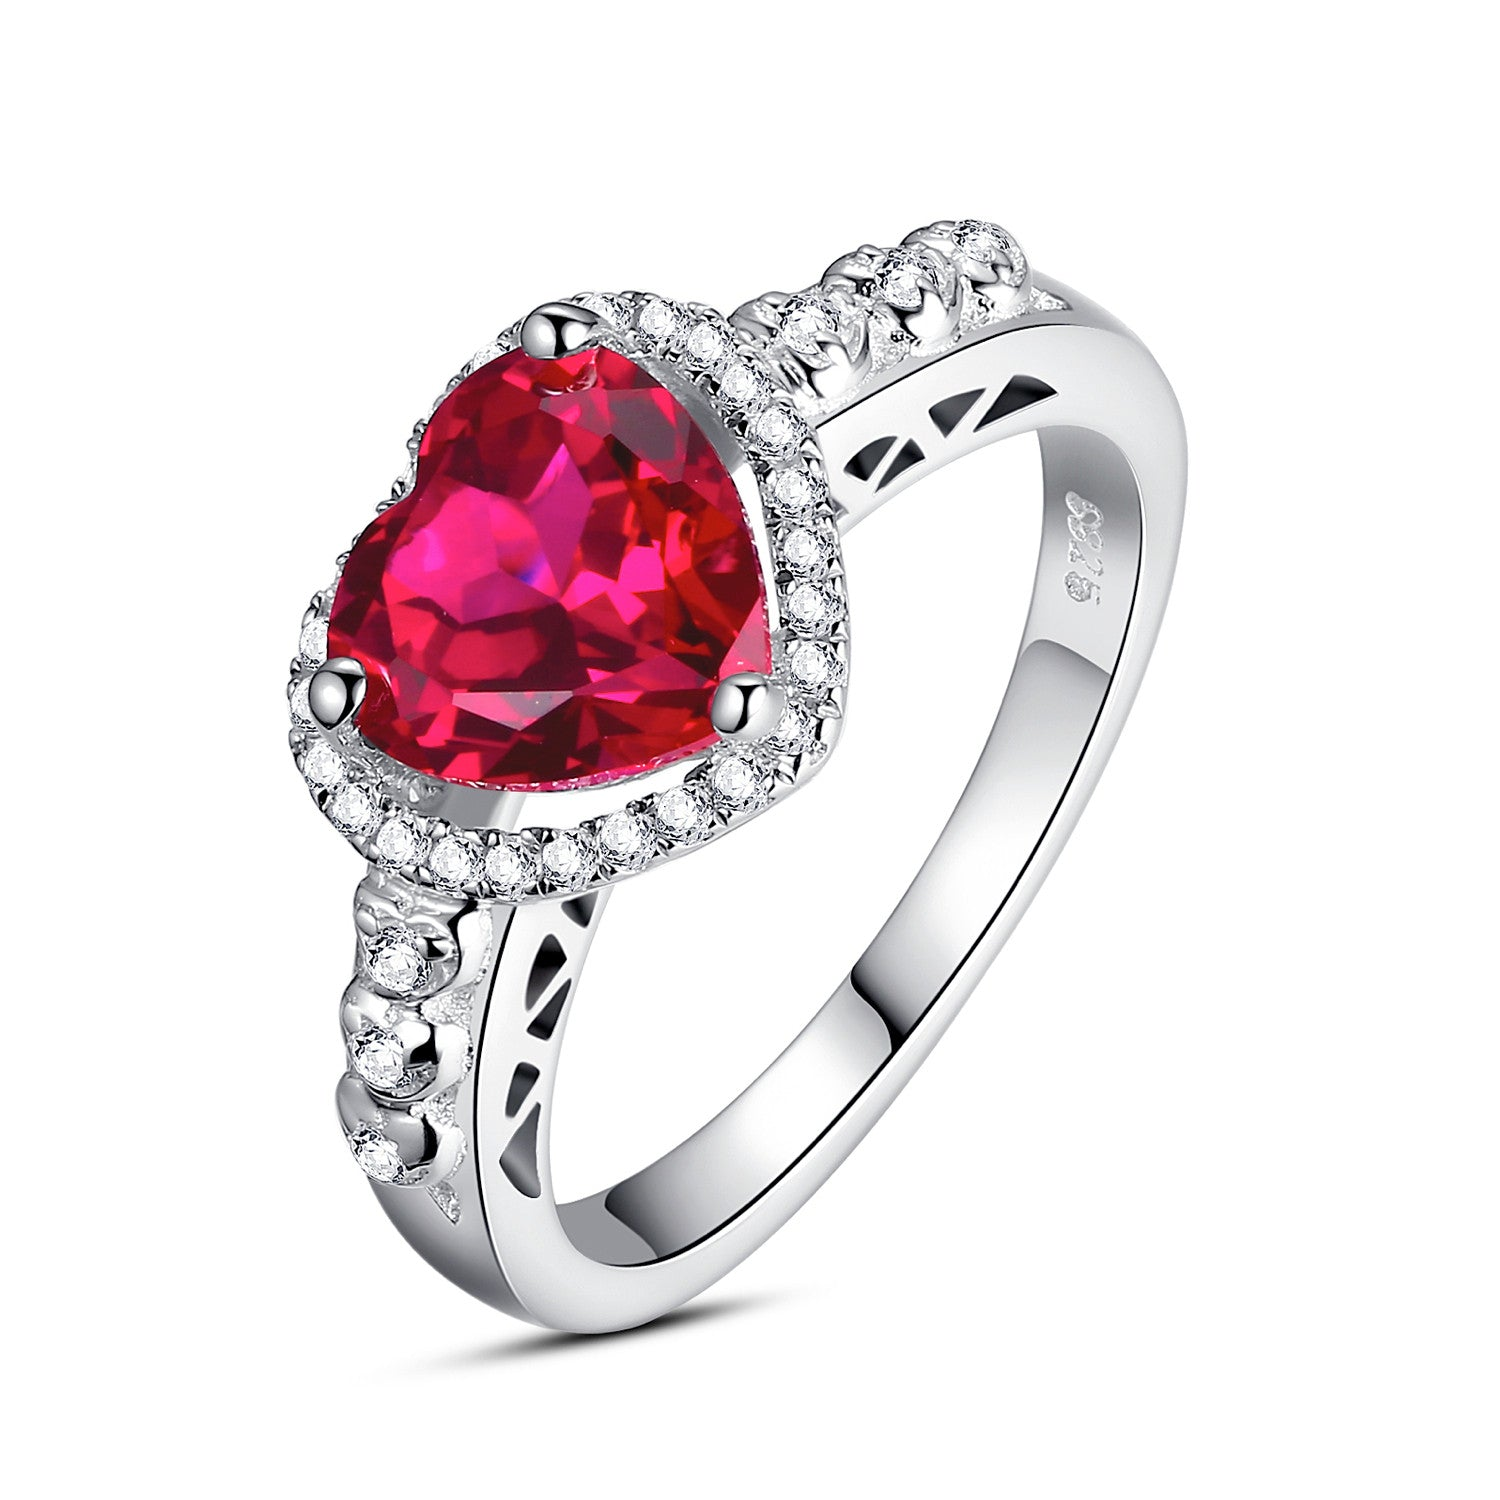 value doesn when rings stunning meaning t we its earth are ruby ring the engagement from that firm comes to under f of news tag brilliant believers behind it natural price but feb come